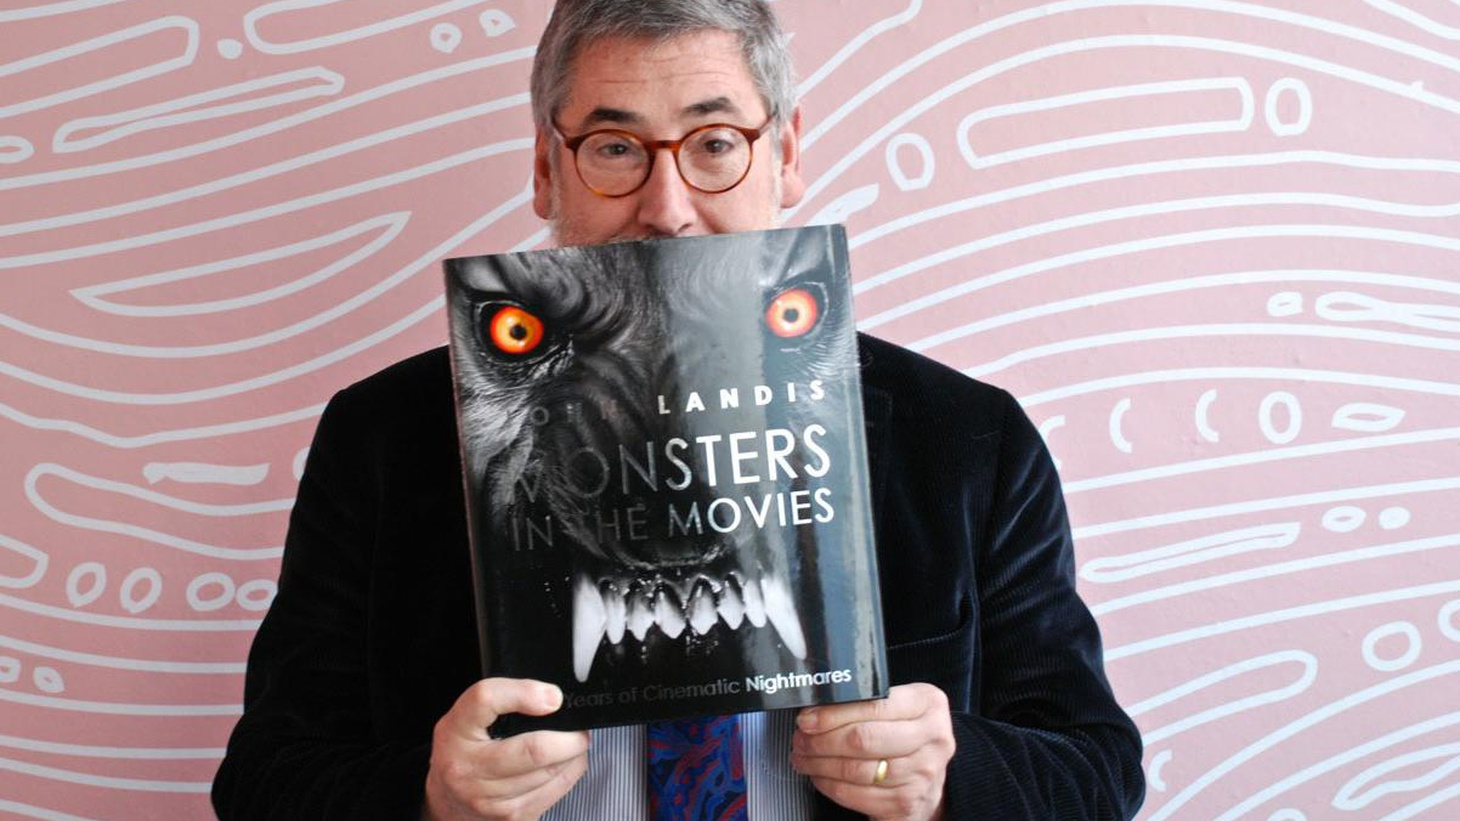 Elvis Mitchell talks to director John Landis about his new book, Monsters in the Movies, a visually rich history of the presence and evolution of monsters in film.